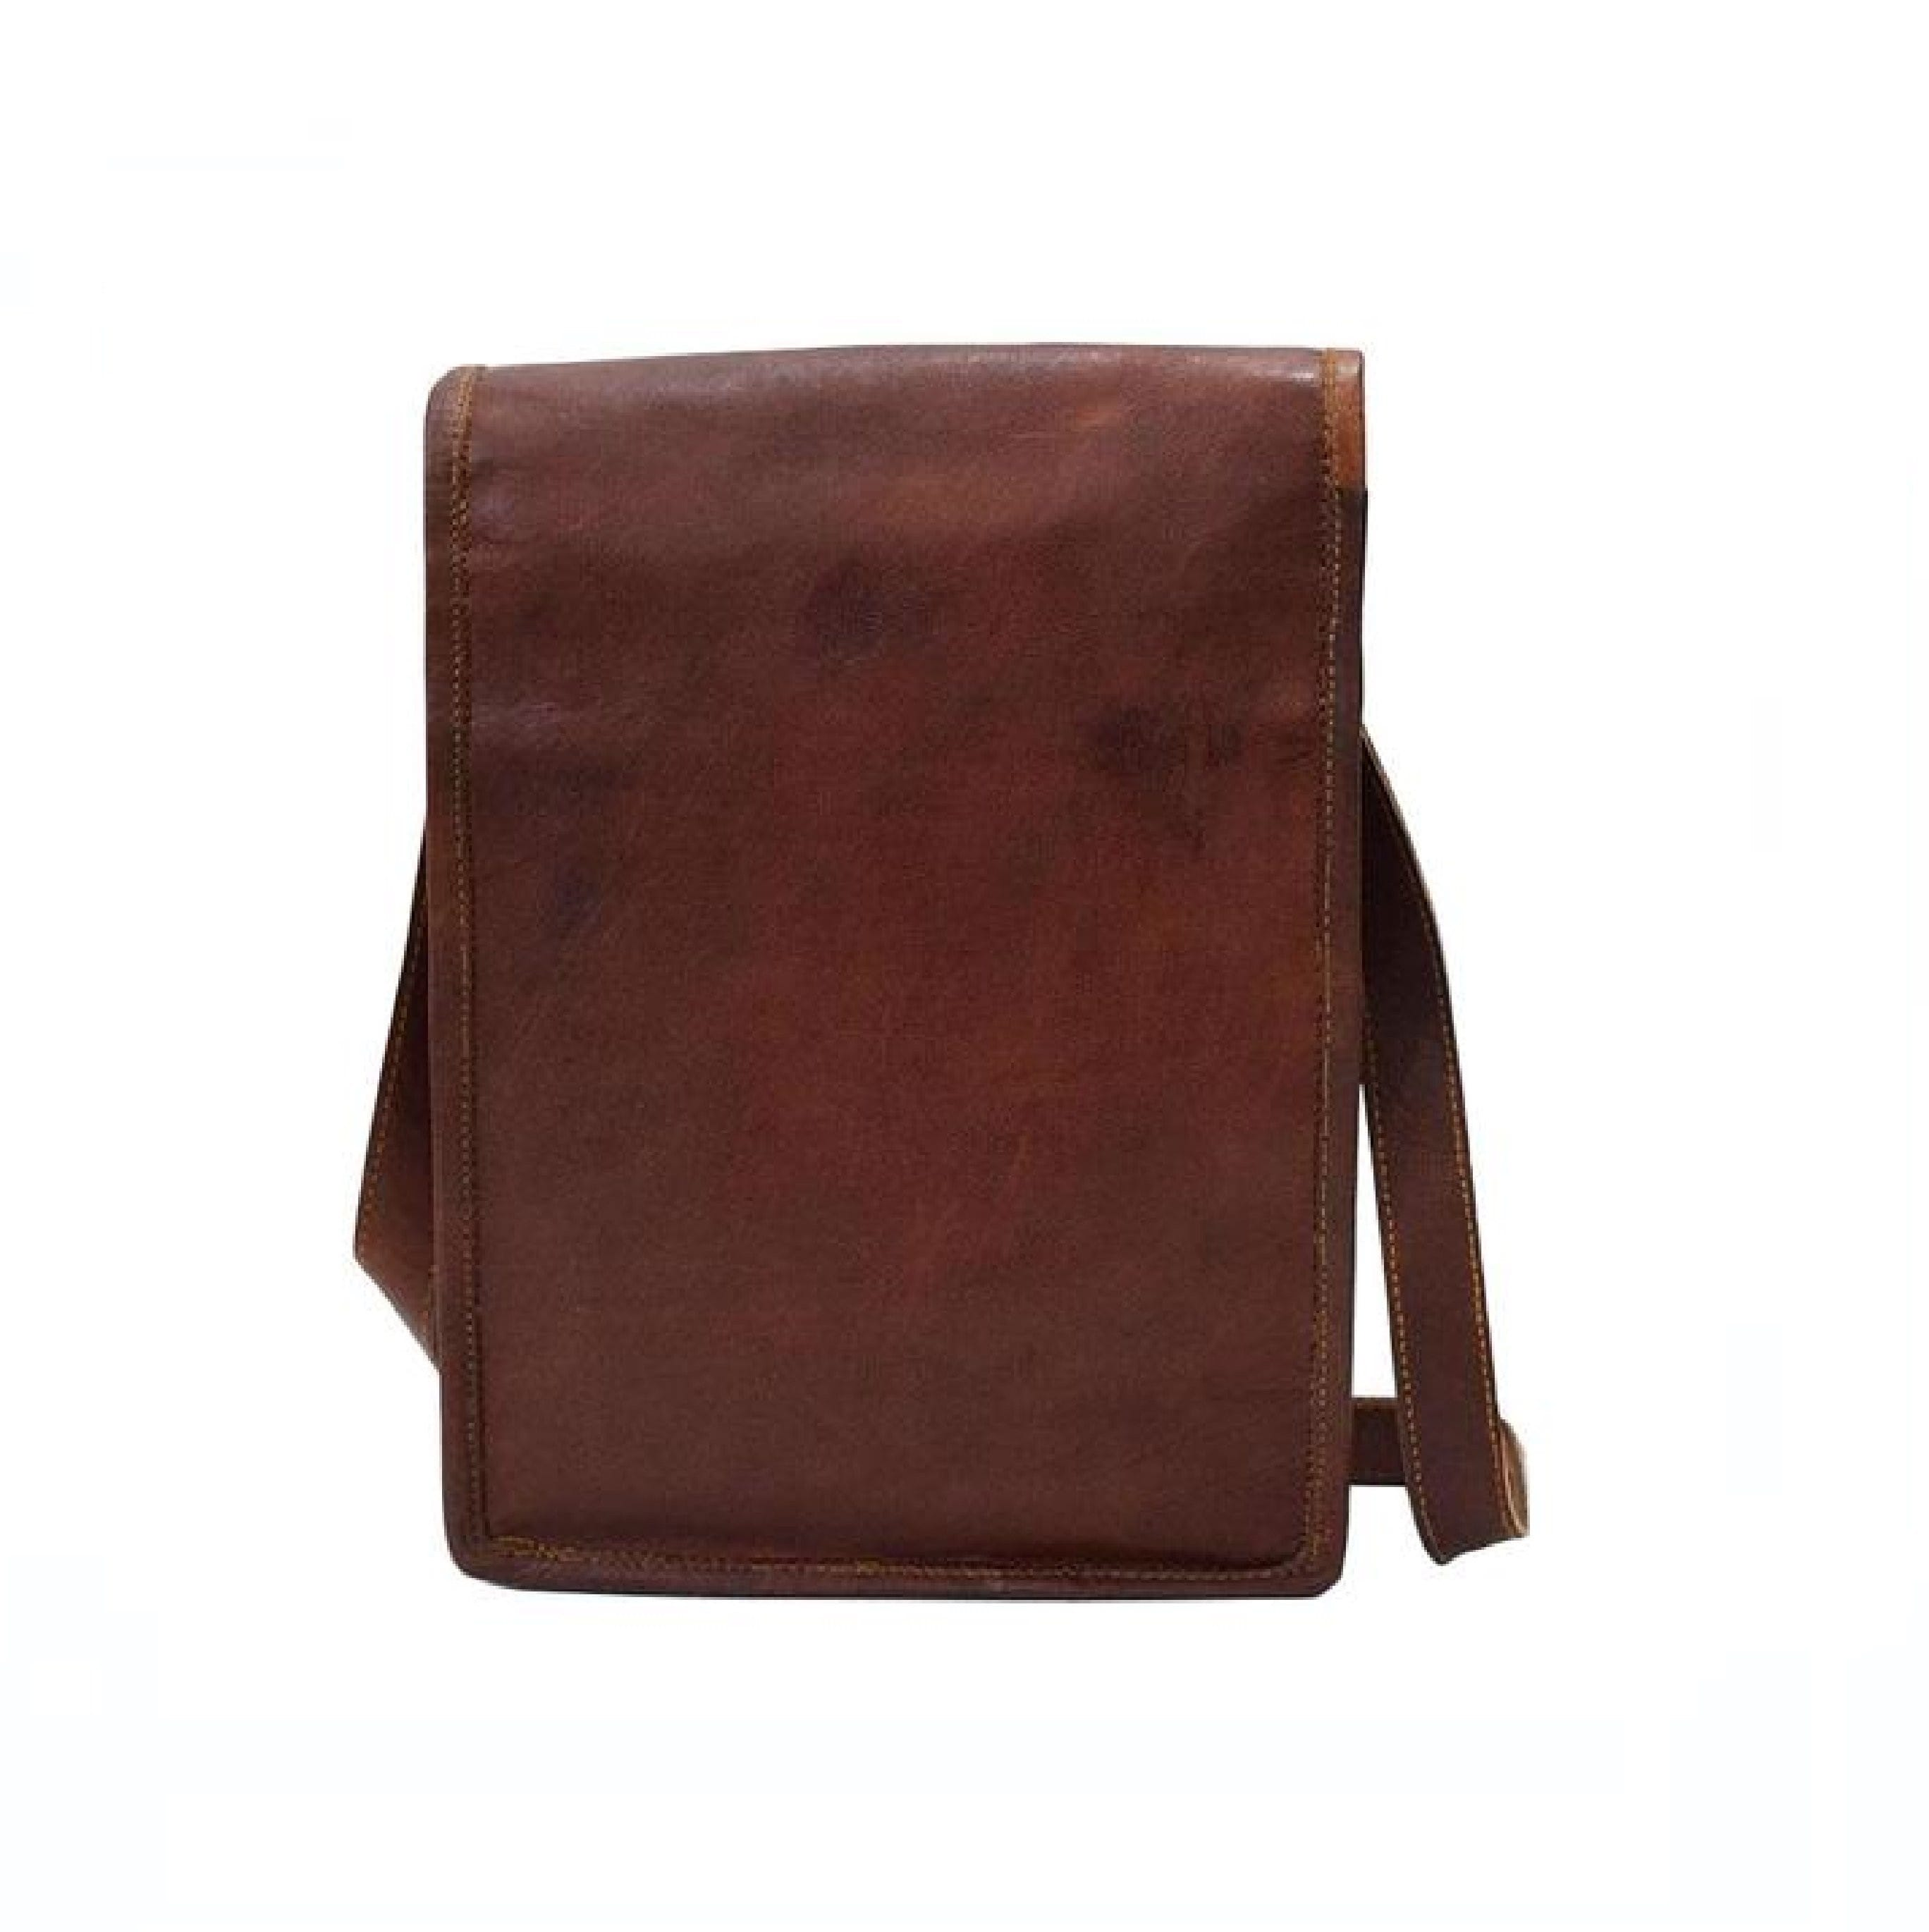 Unisex Brown Single Pocket Sling  Leather Bag - BohoEntice